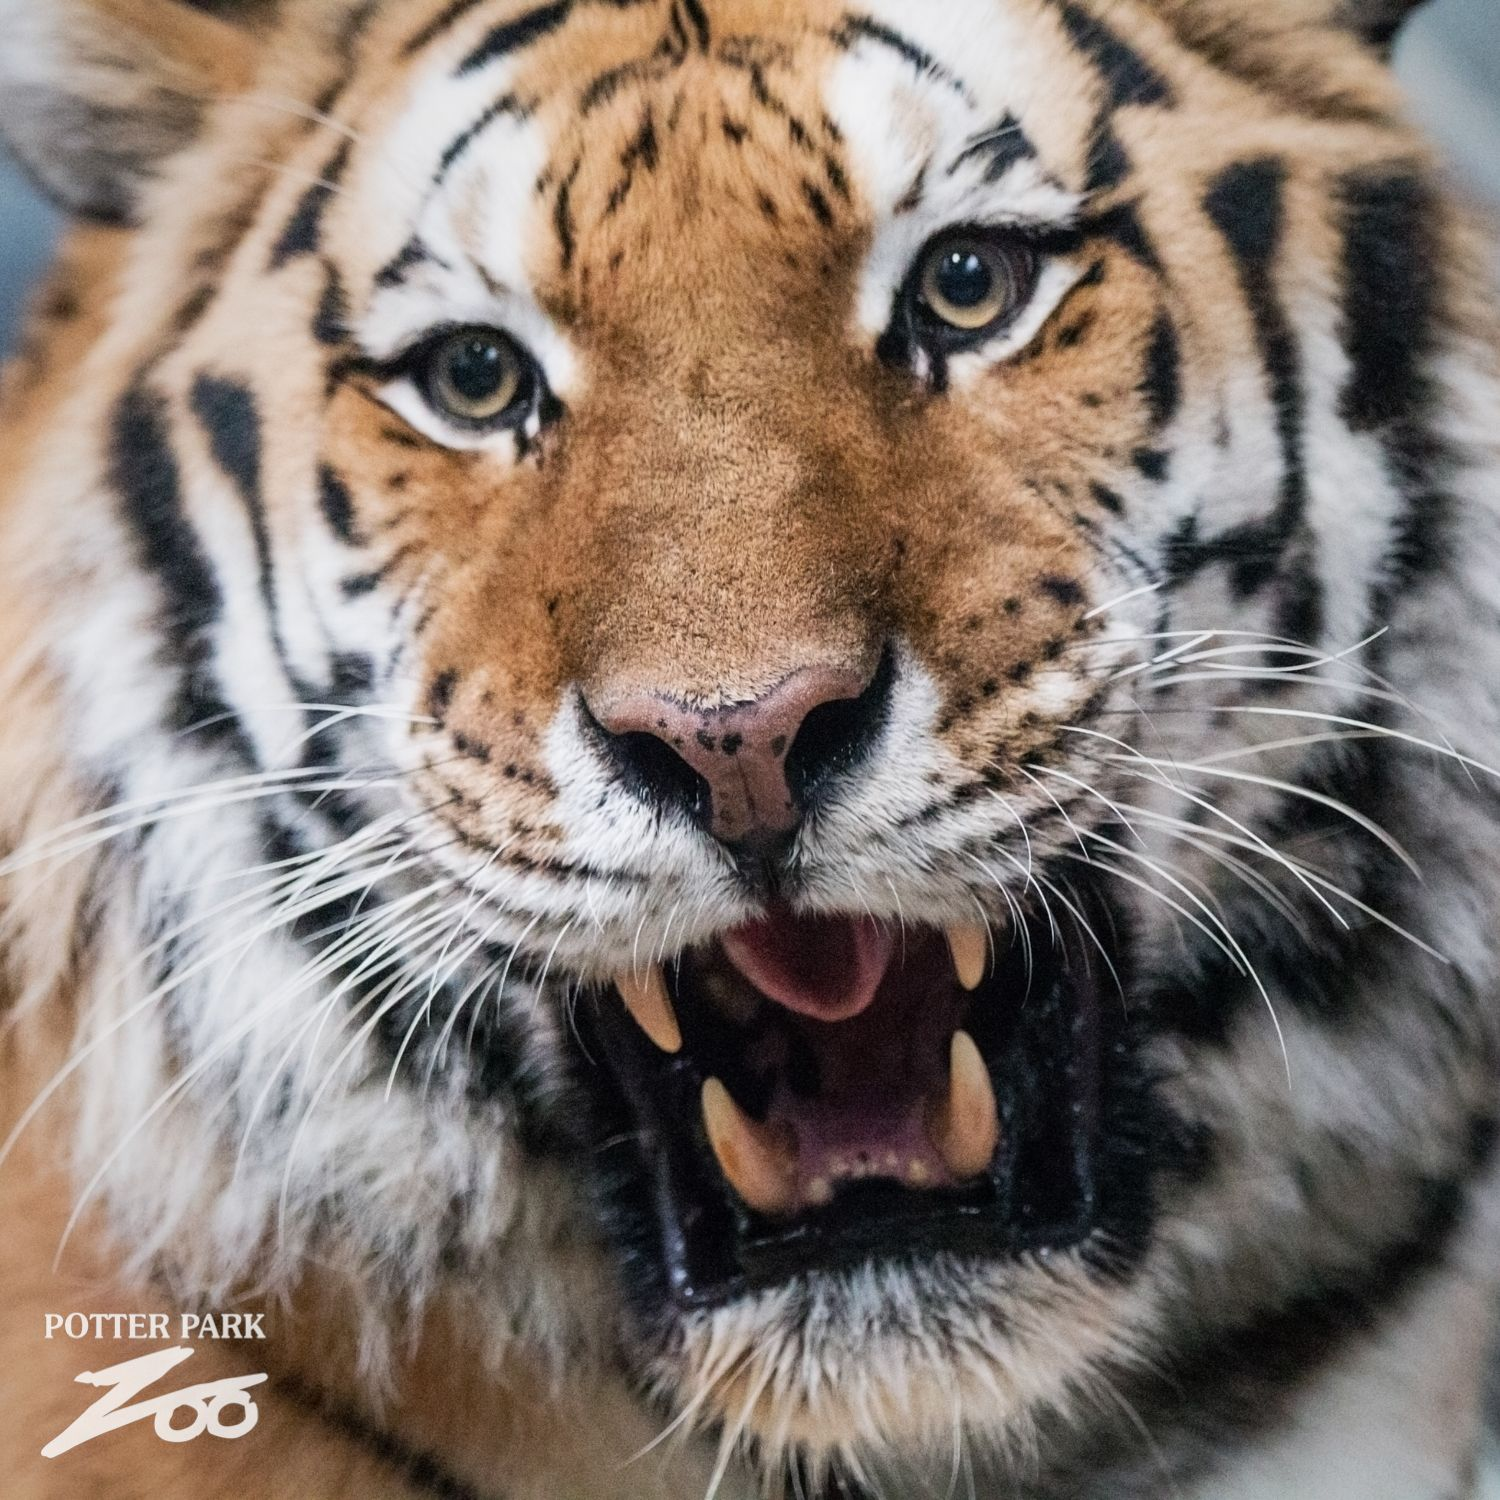 An amazing Amur Tiger at Potter Park Zoo in Lansing